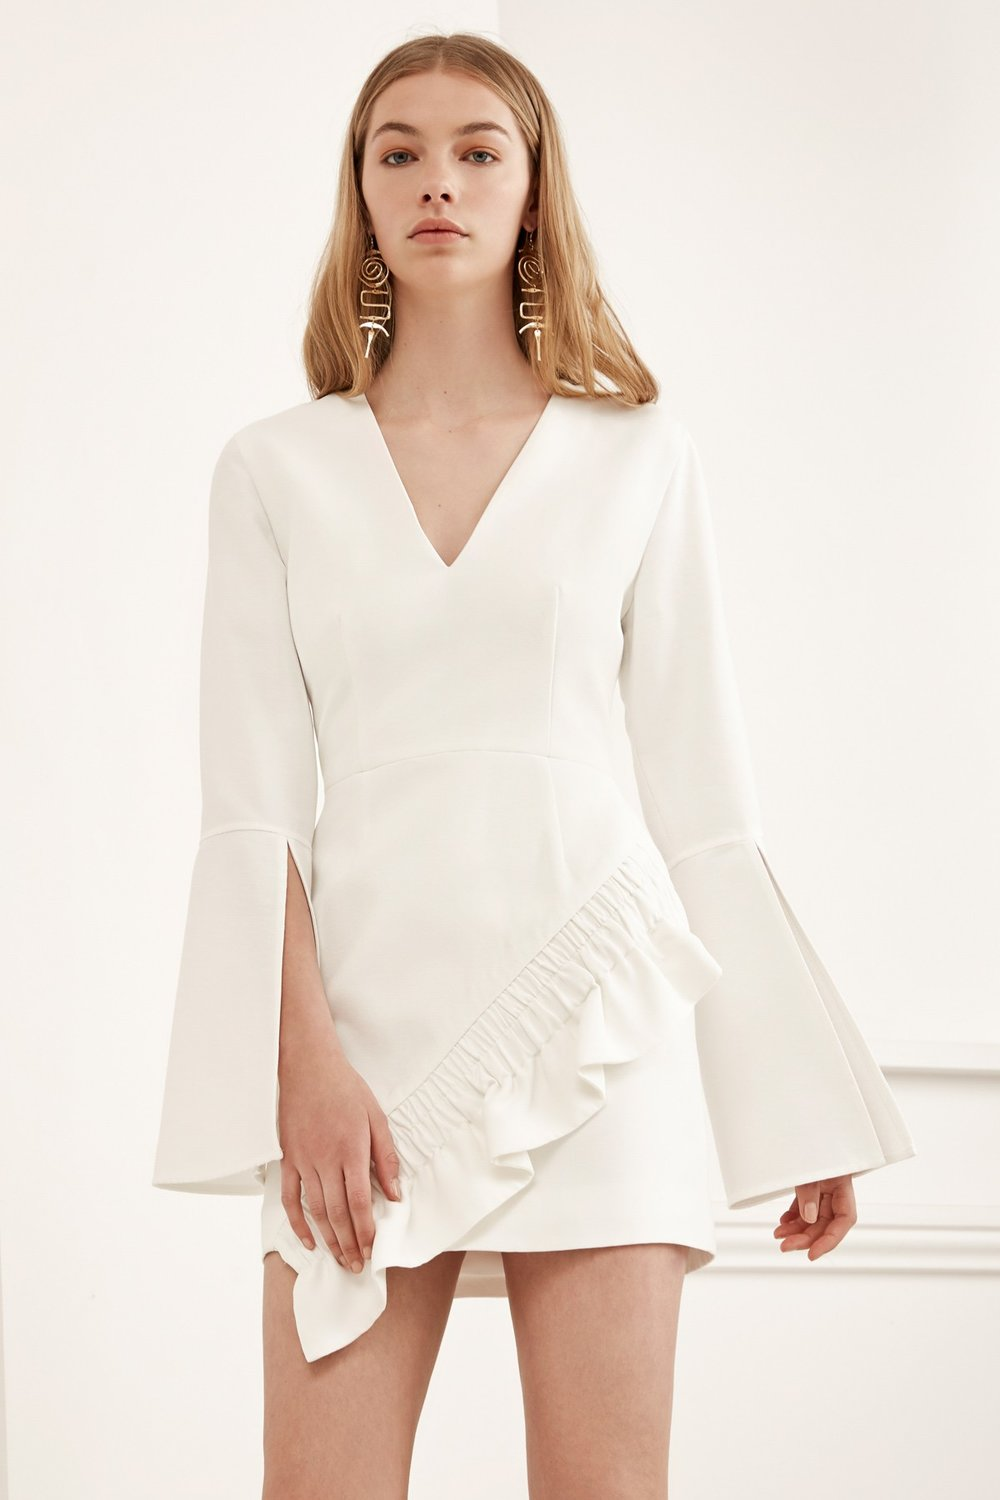 This ivory dress reminds us of what a futuristic Greek goddess would wear. The slit bell sleeves give this dress the look of a cape and the ruffle detail softens the structure of this piece. If you're searching for an unexpected dress to carry you through spring and summer, this is the perfect piece for you!